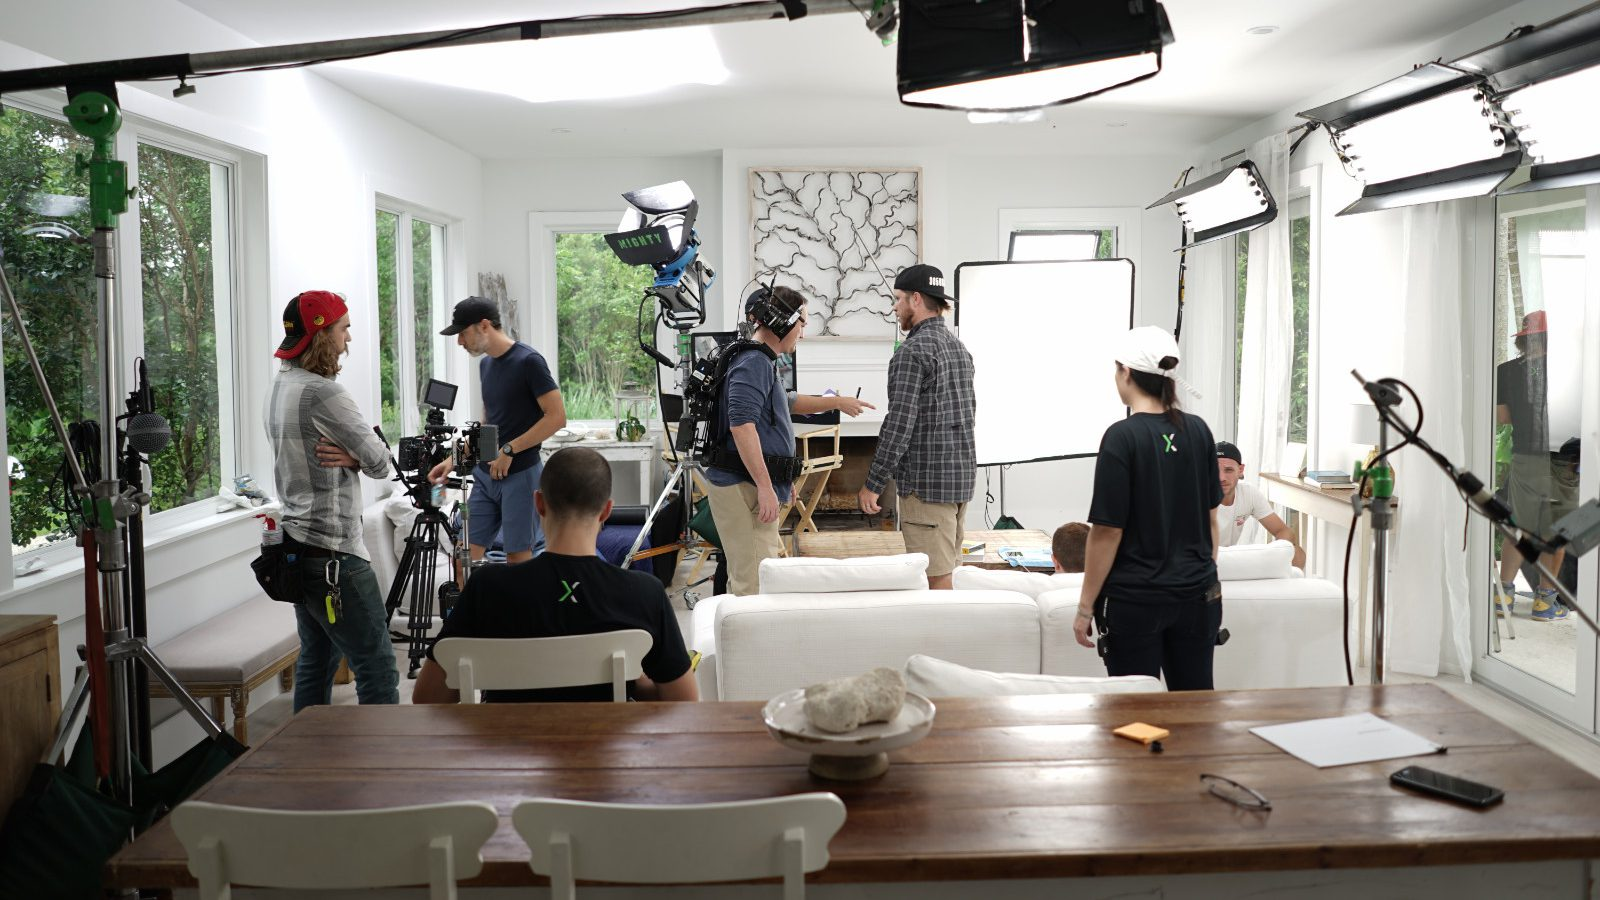 Anker - Use Anker Instead - Artex Productions - Best Video Production Team in Miami, FL